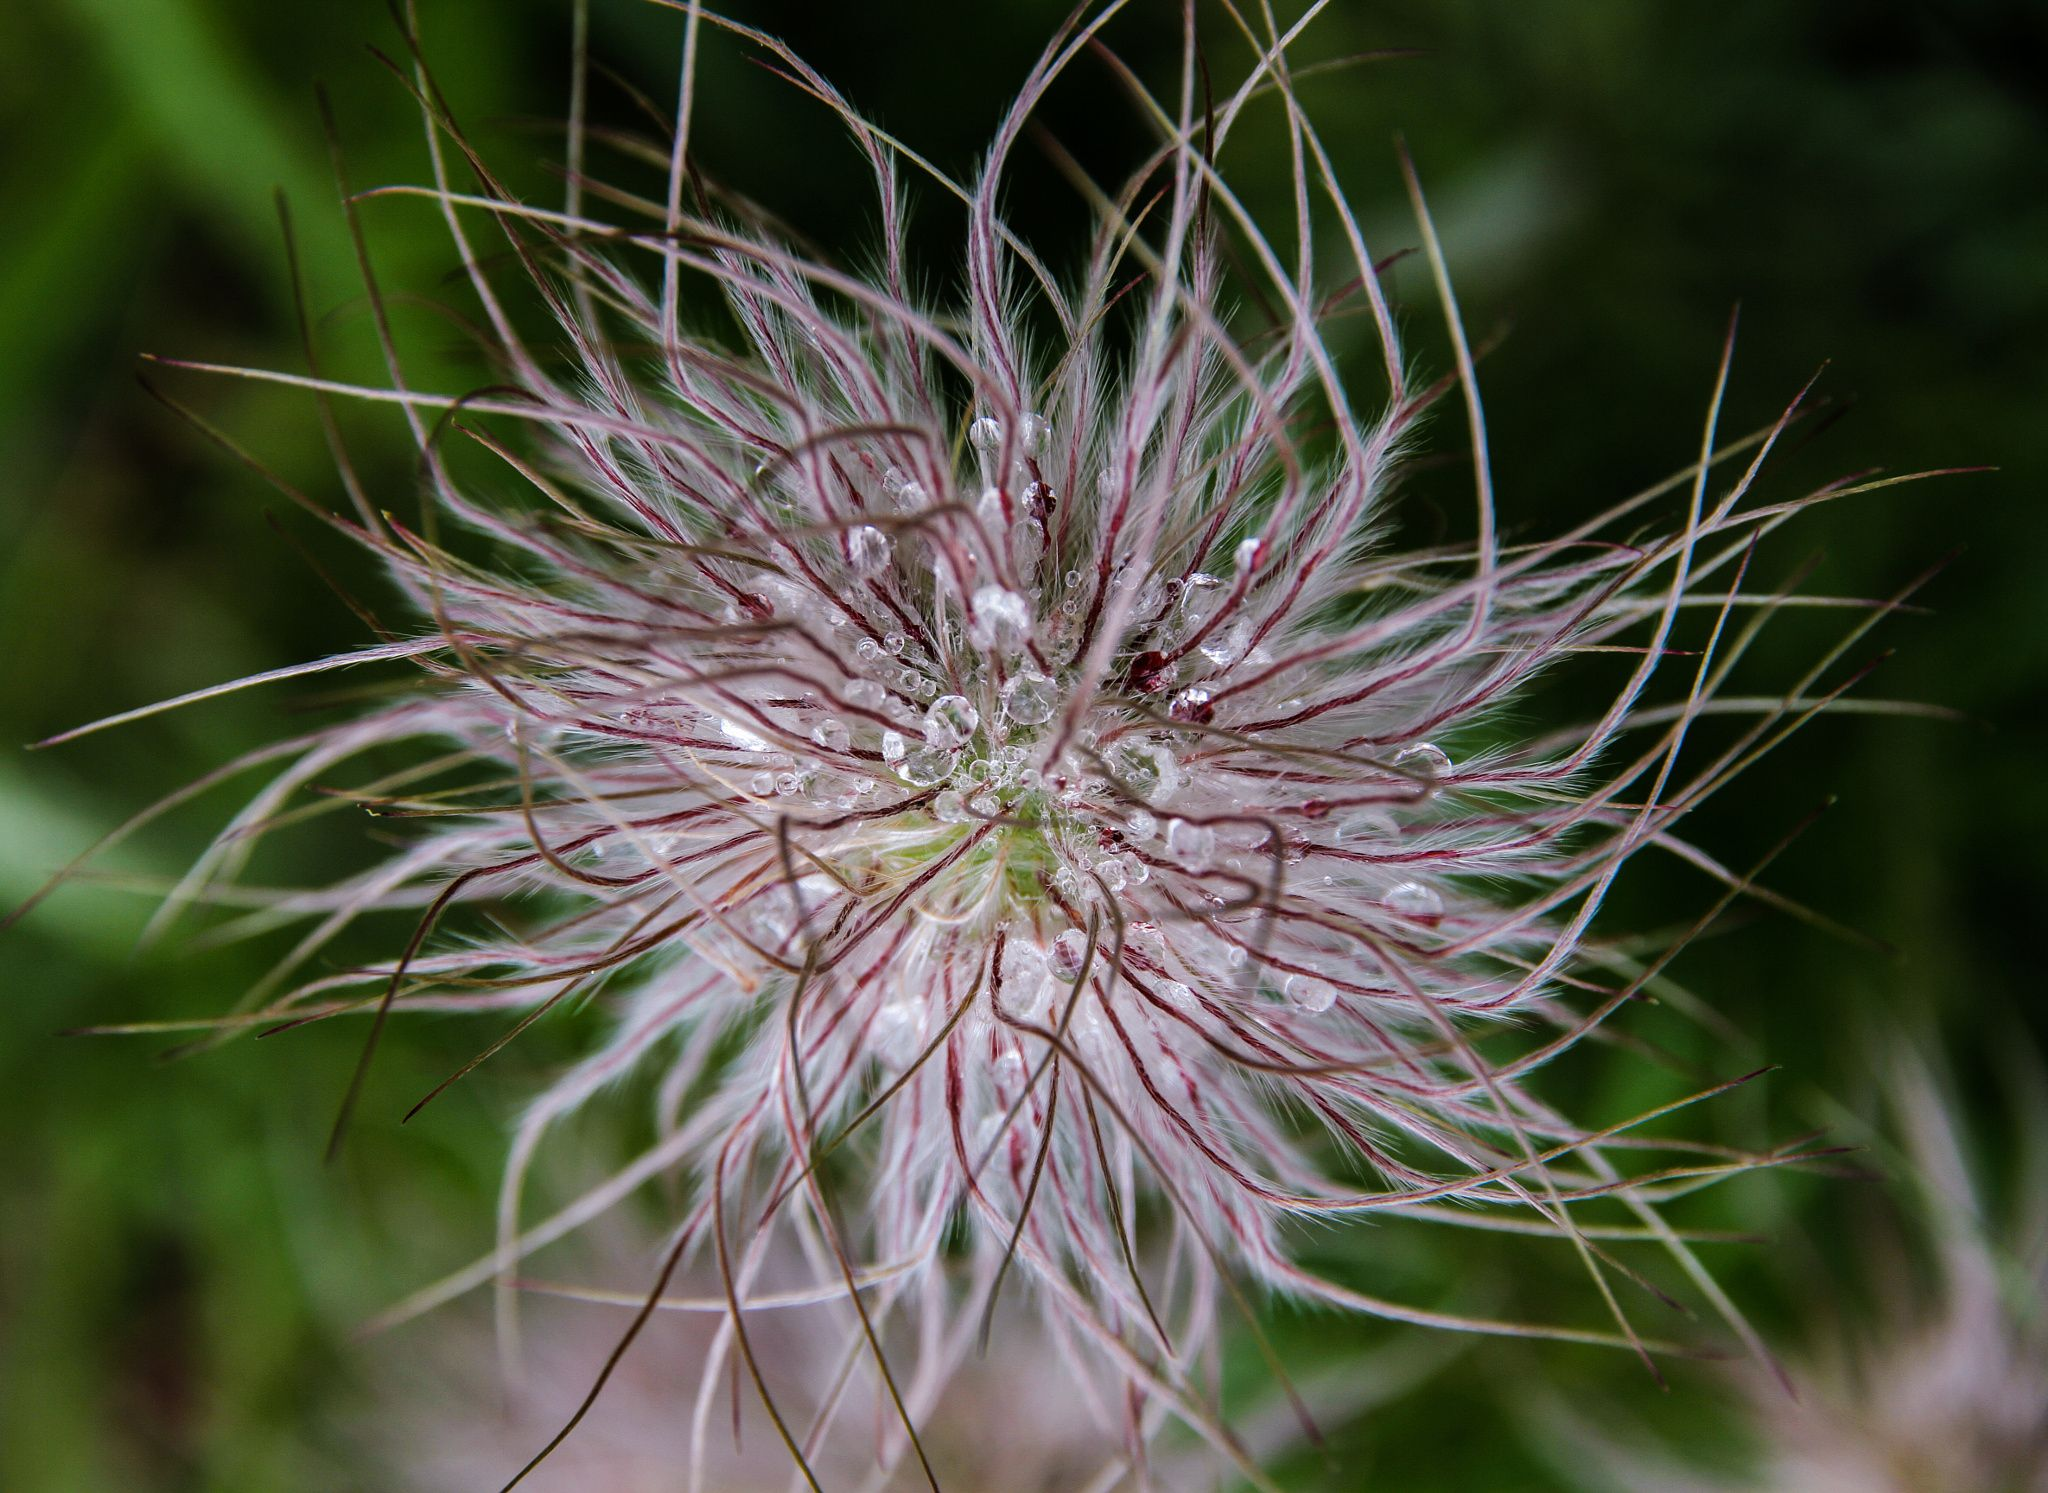 Amazing flower in the forest - Amazing flower in the forest